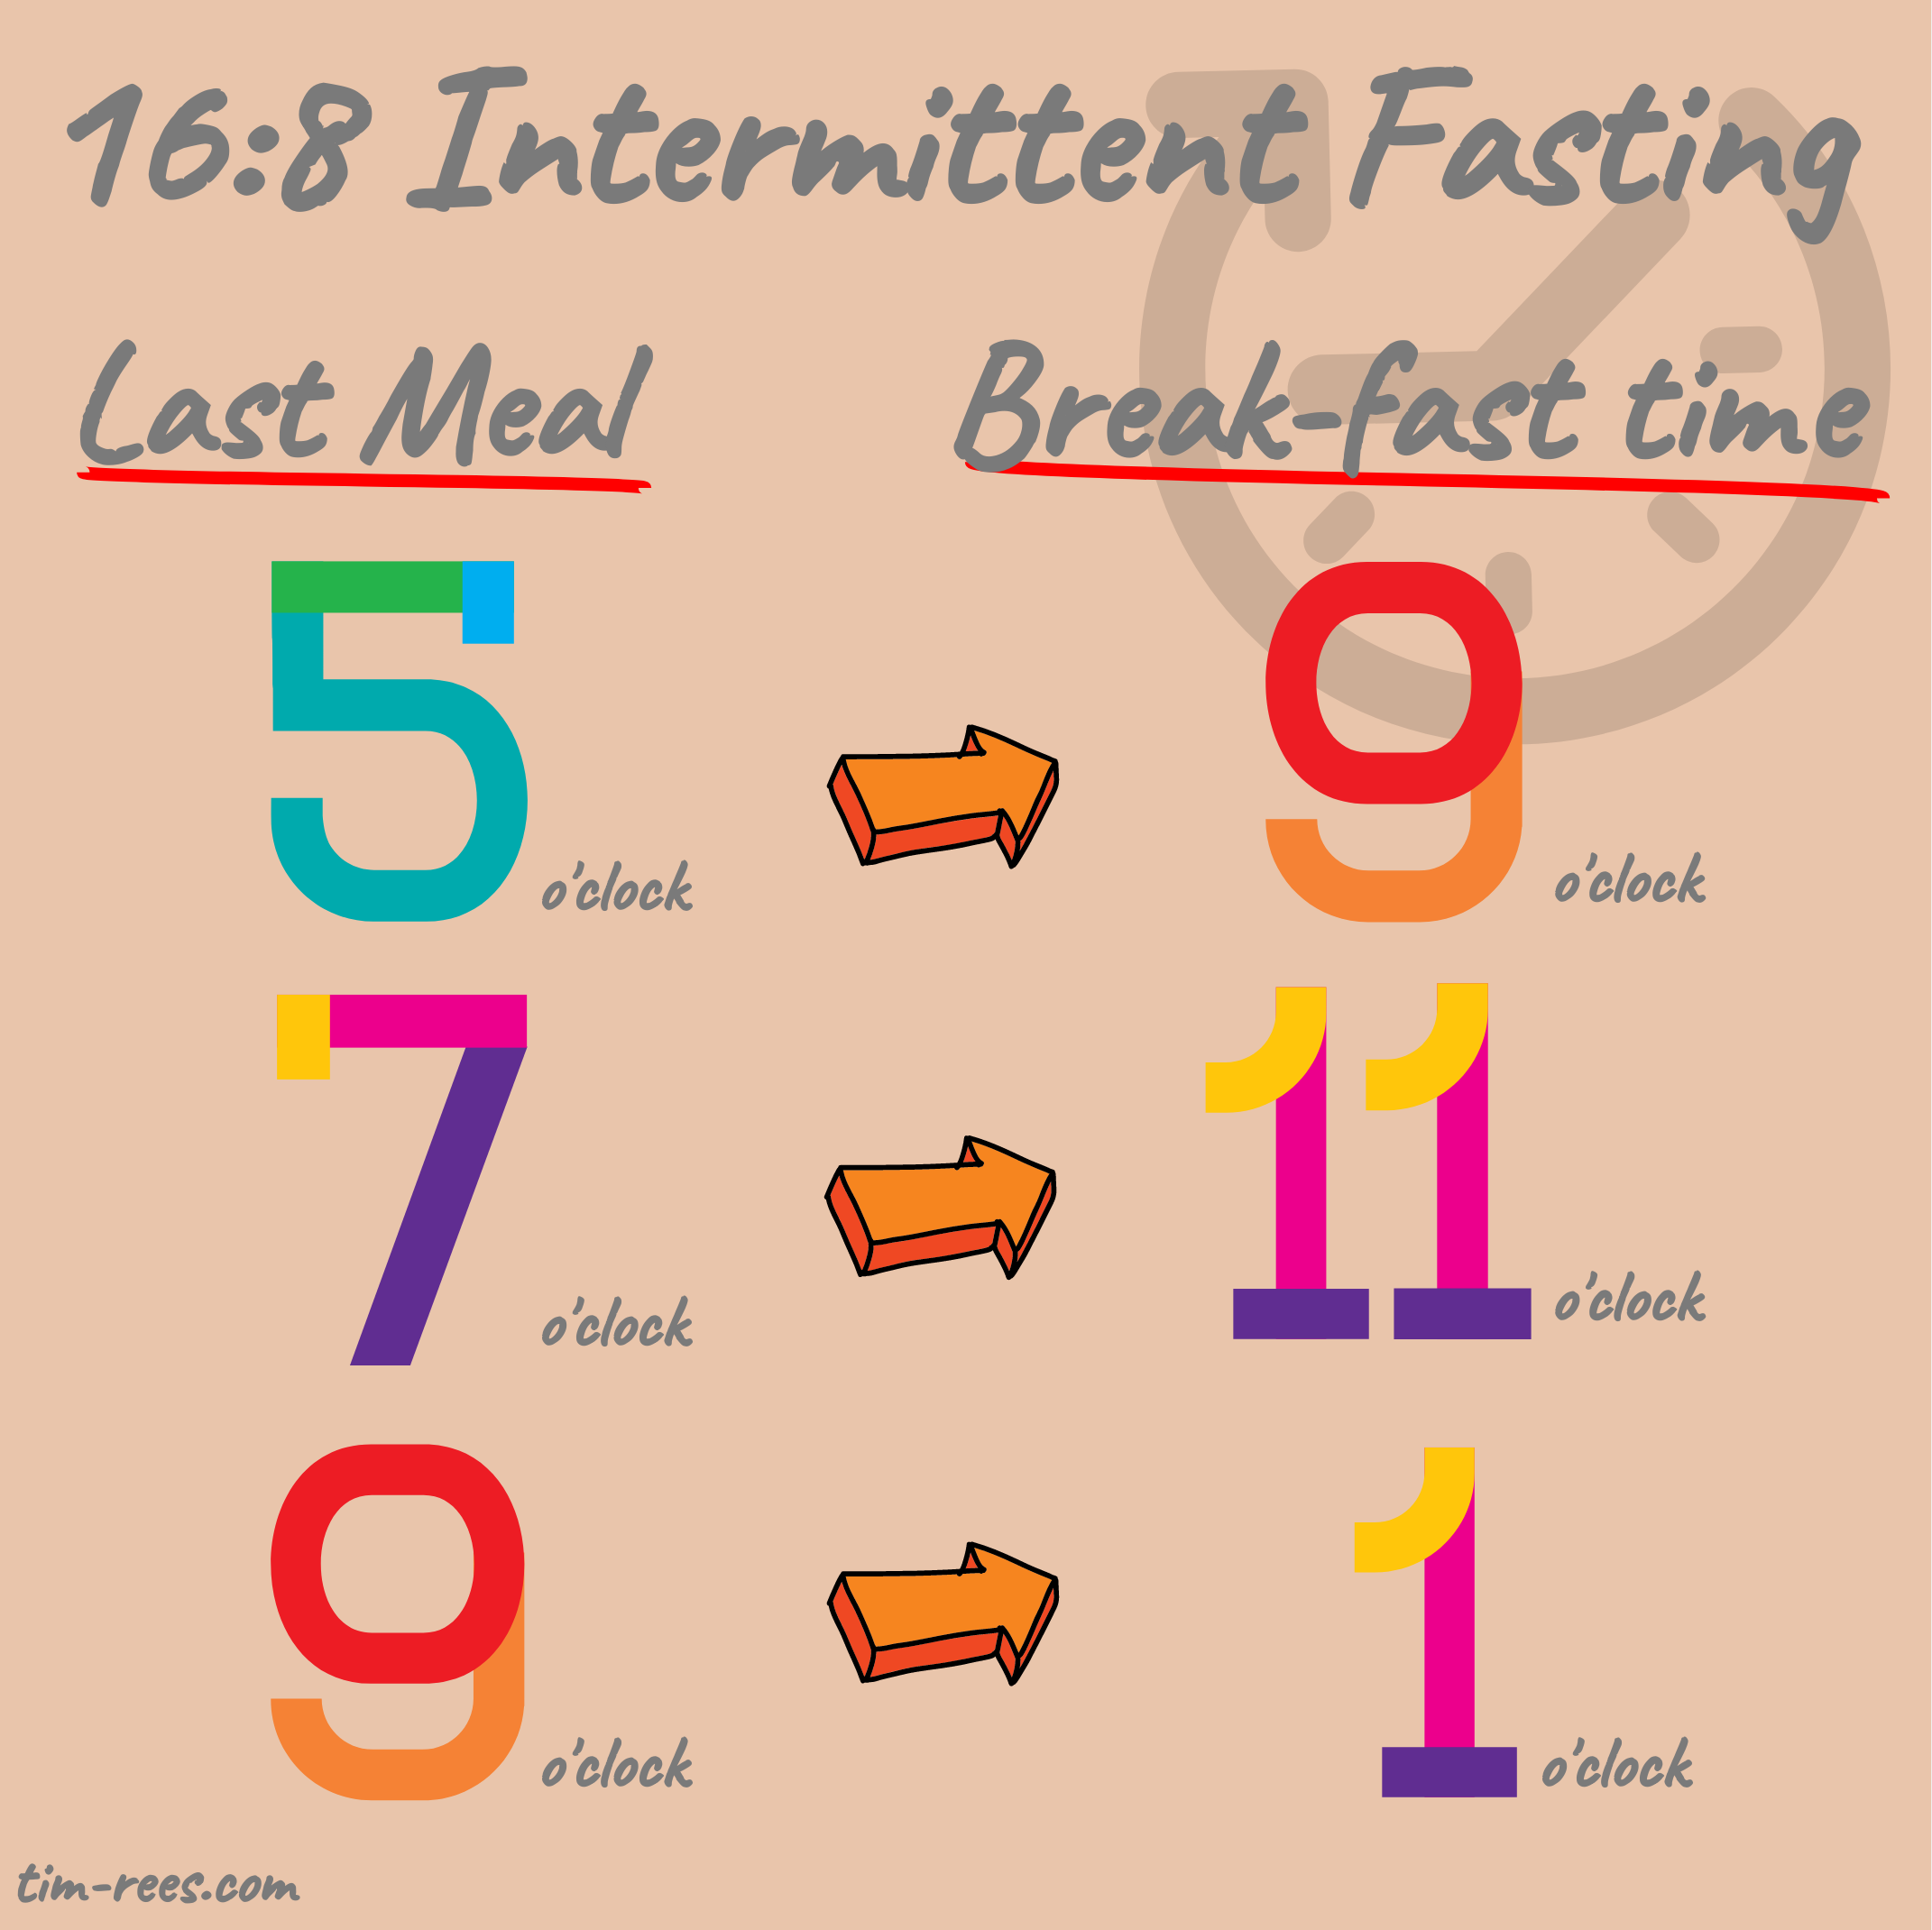 2 Simple Steps To Make Intermittent Fasting An Effortless Part Of Your Life By Tim Rees Noteworthy The Journal Blog